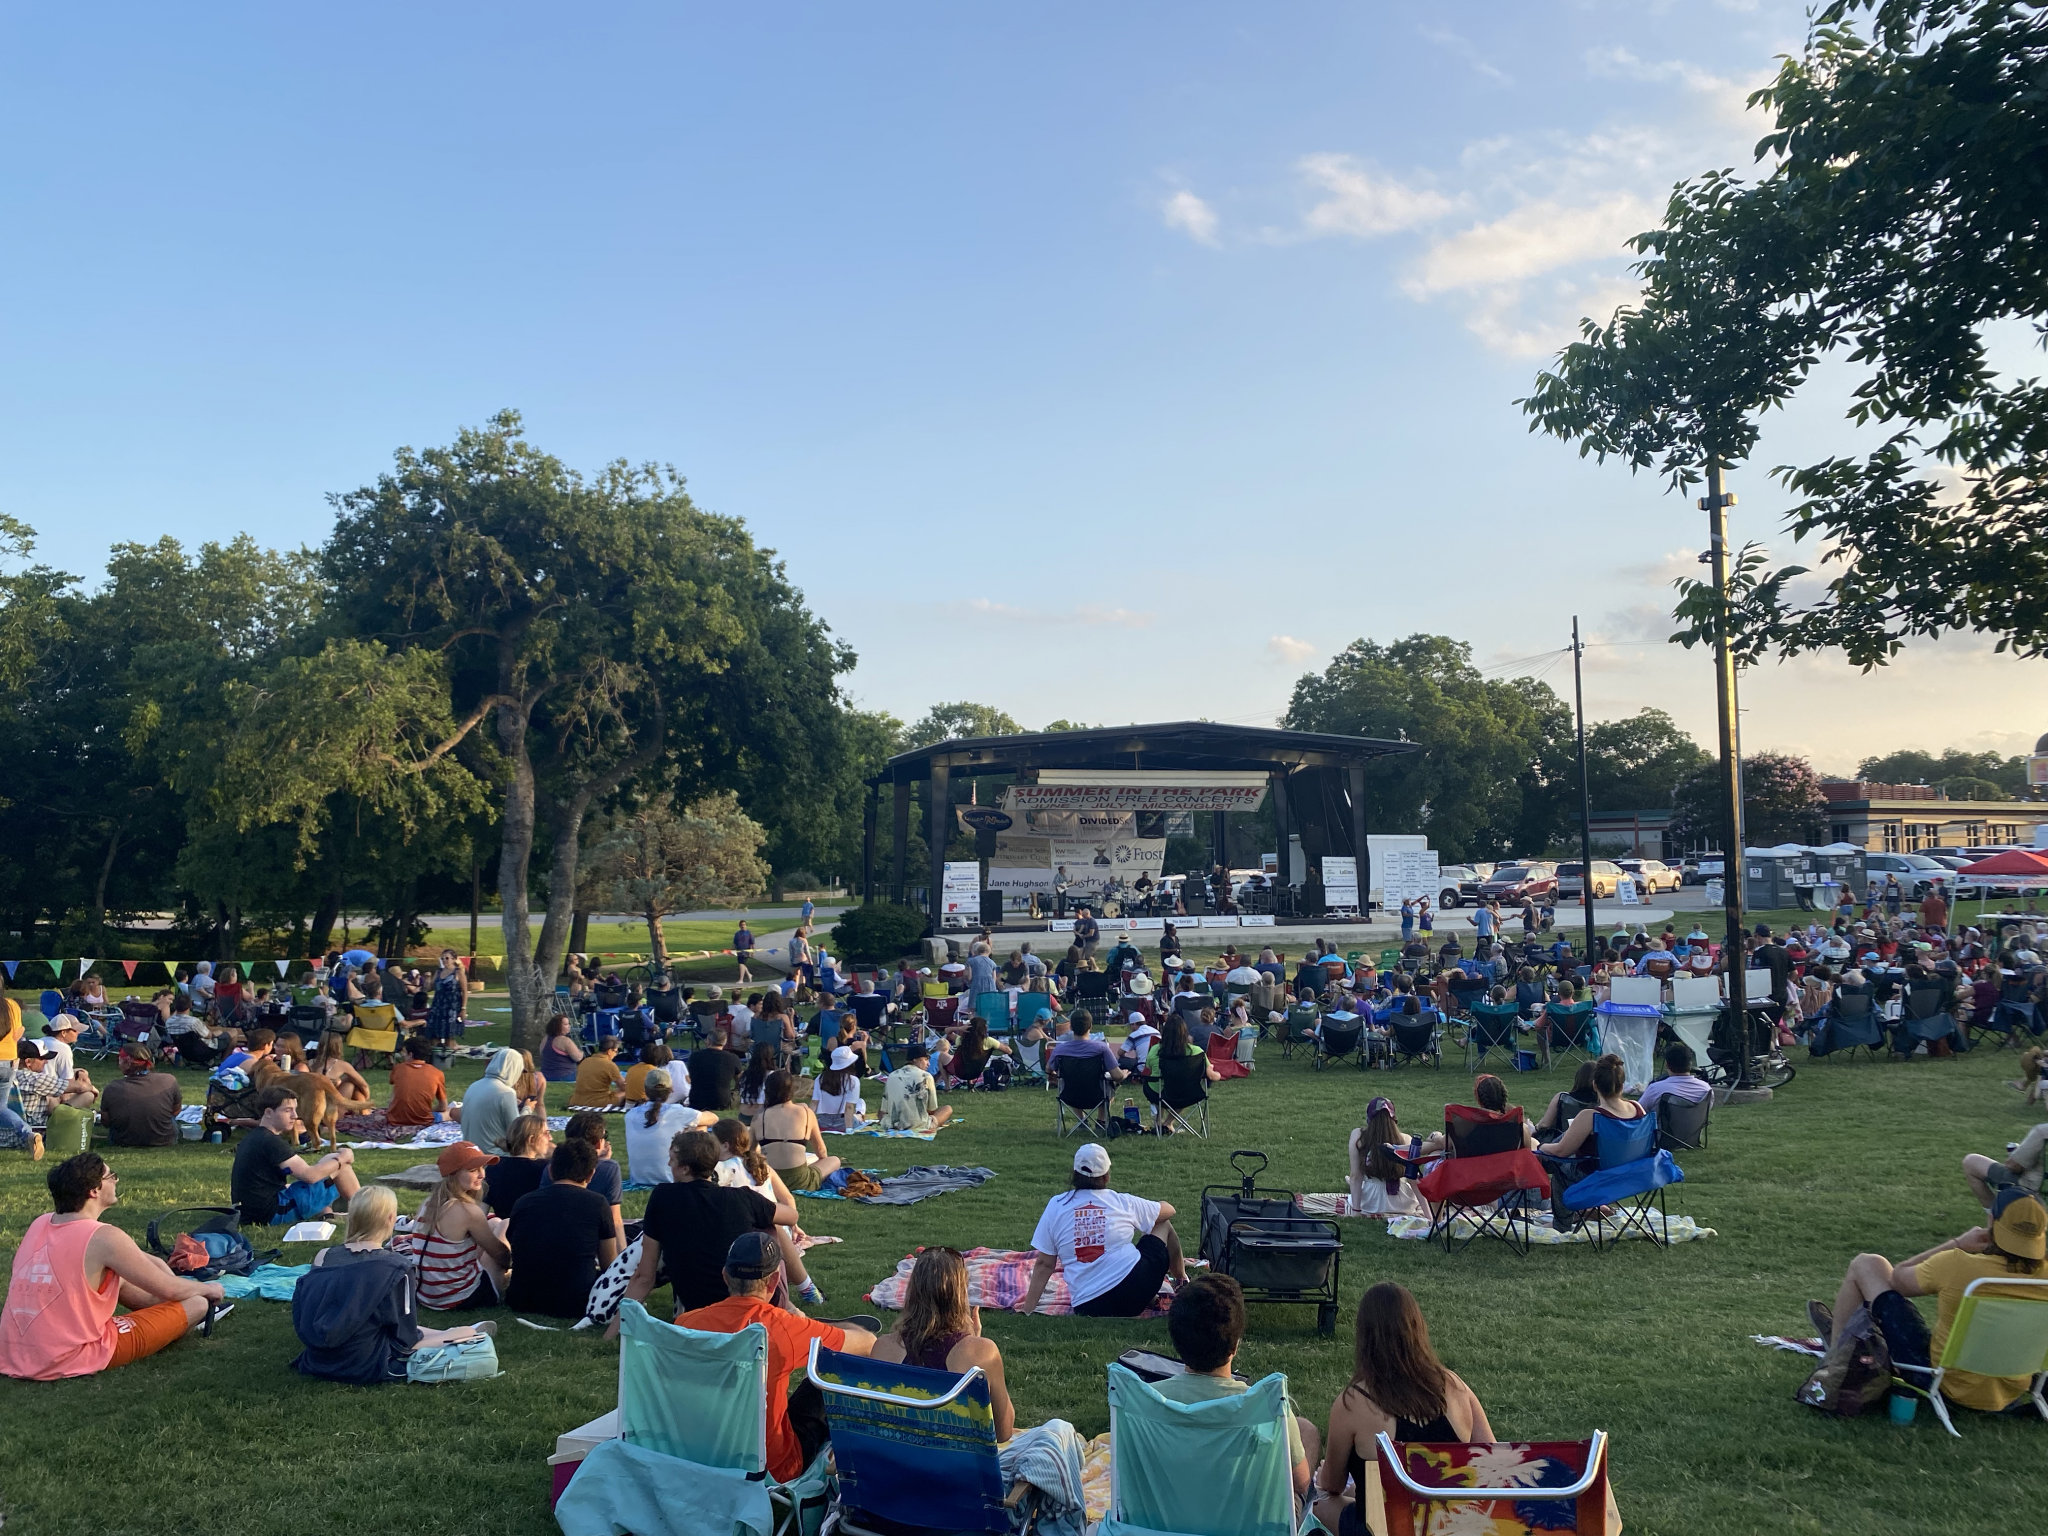 Summer in the Park, Movies in Your Park continue